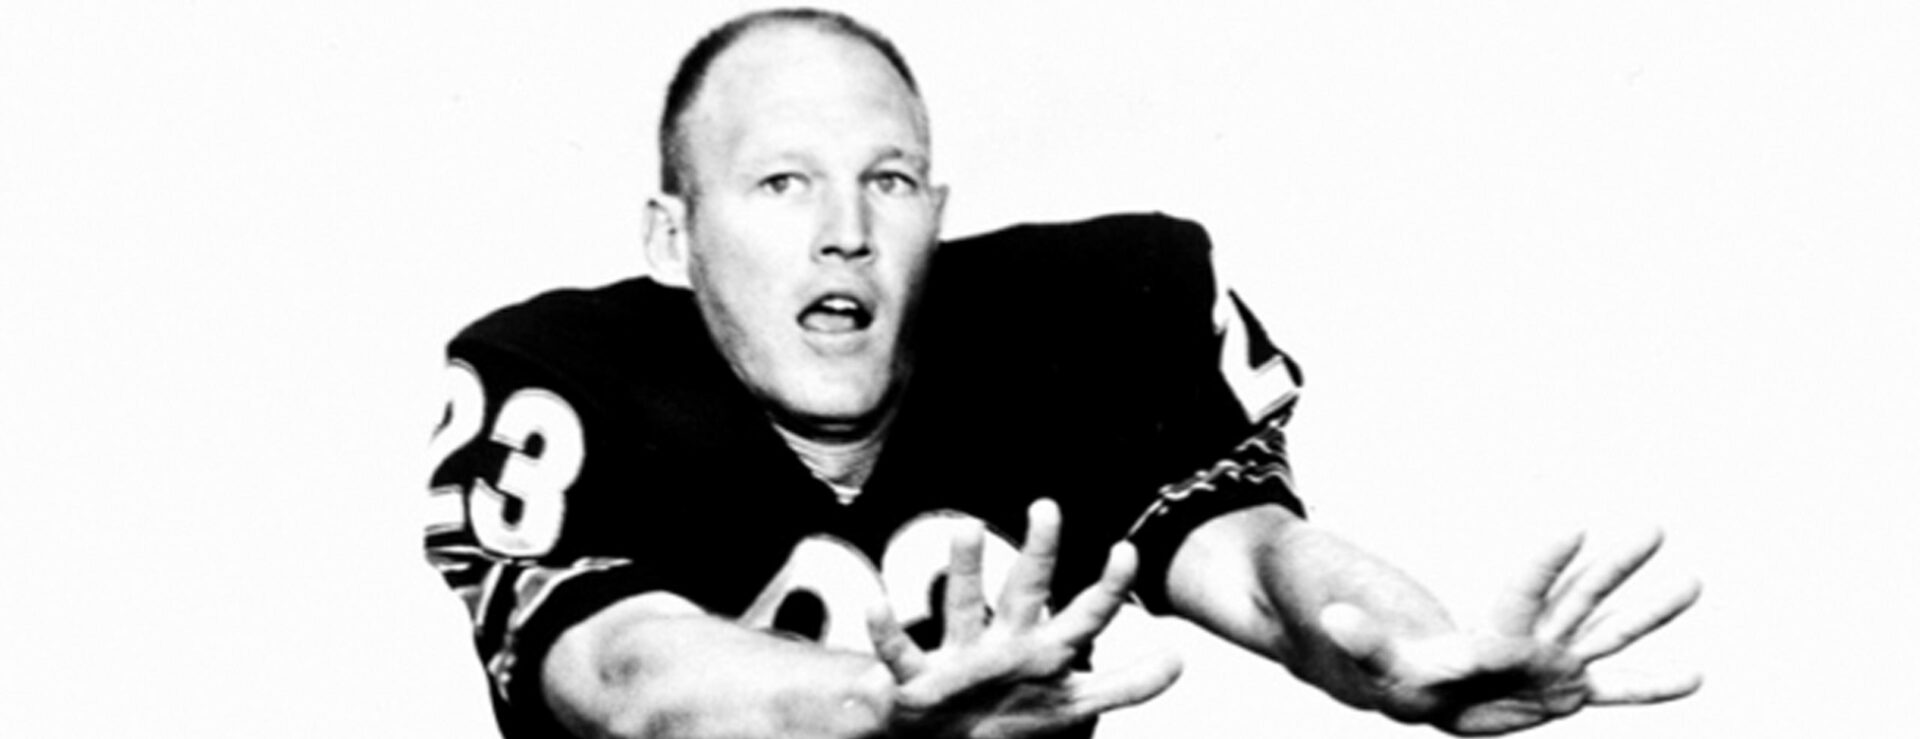 West Michigan's NFL connection was never more in-your-face than in 1963